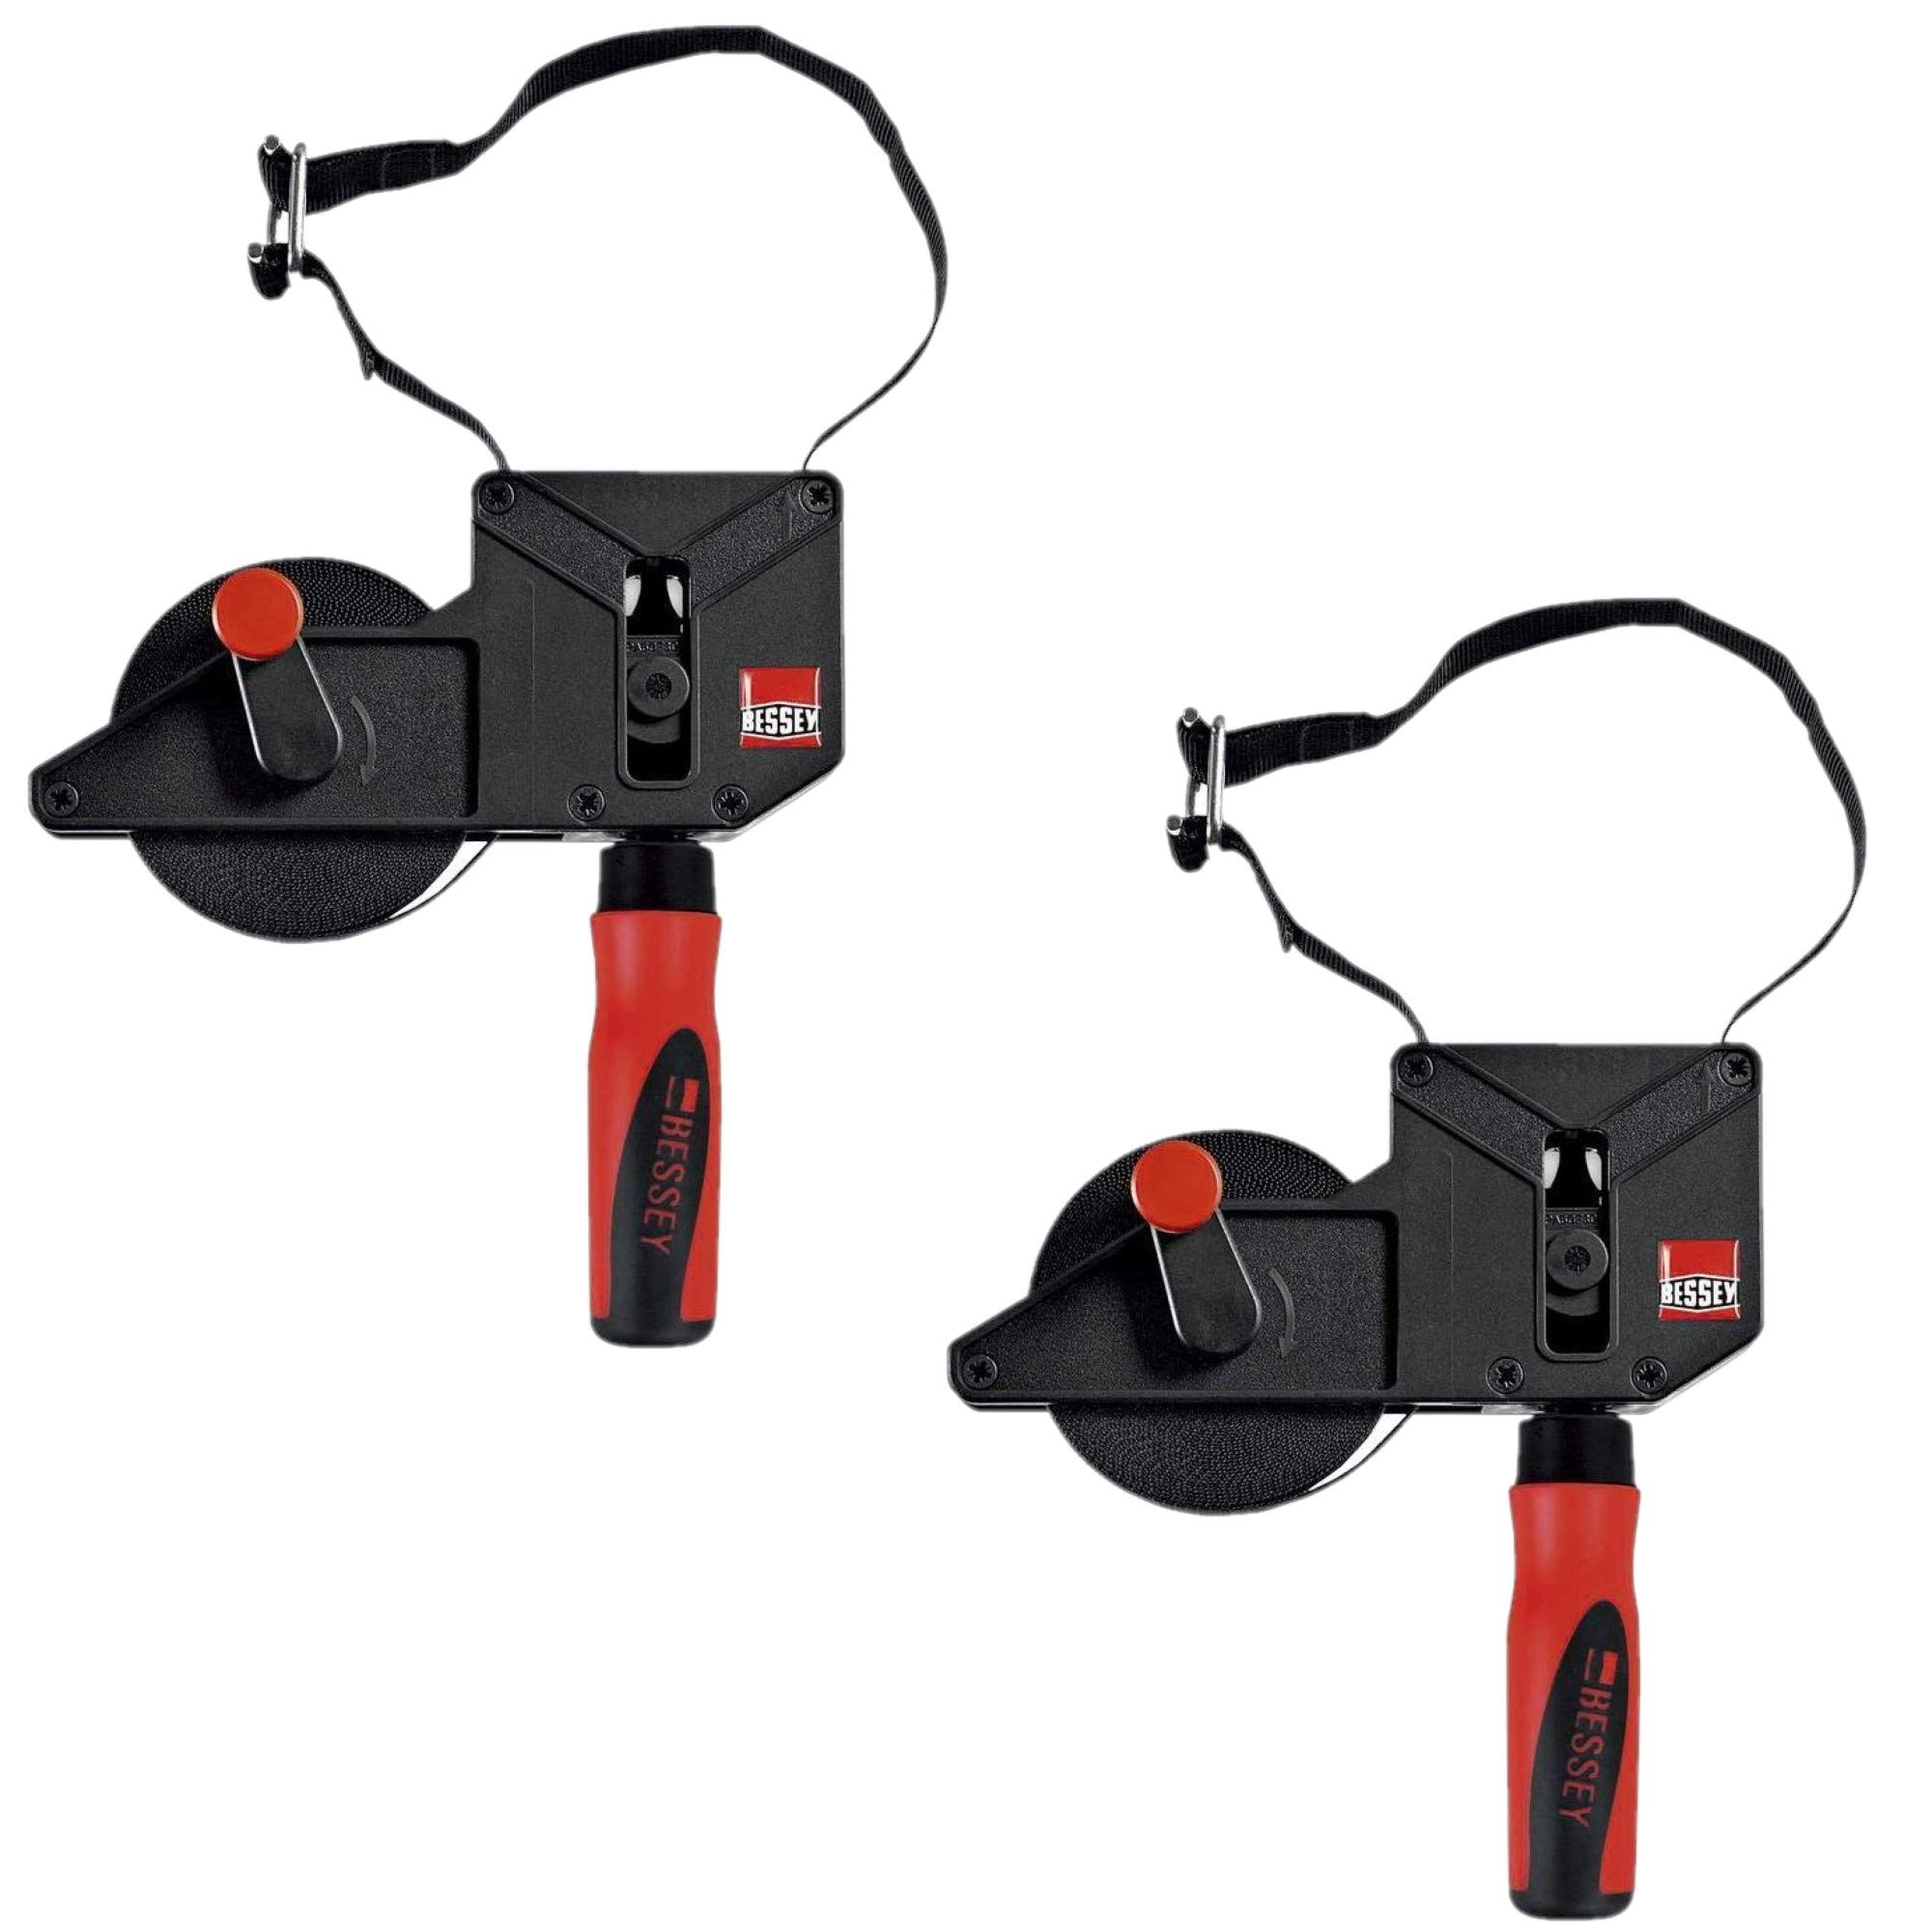 Bessey VAS-23+2K Vario Angle Strap Clamp (Pack of 2) (2) by Bessey